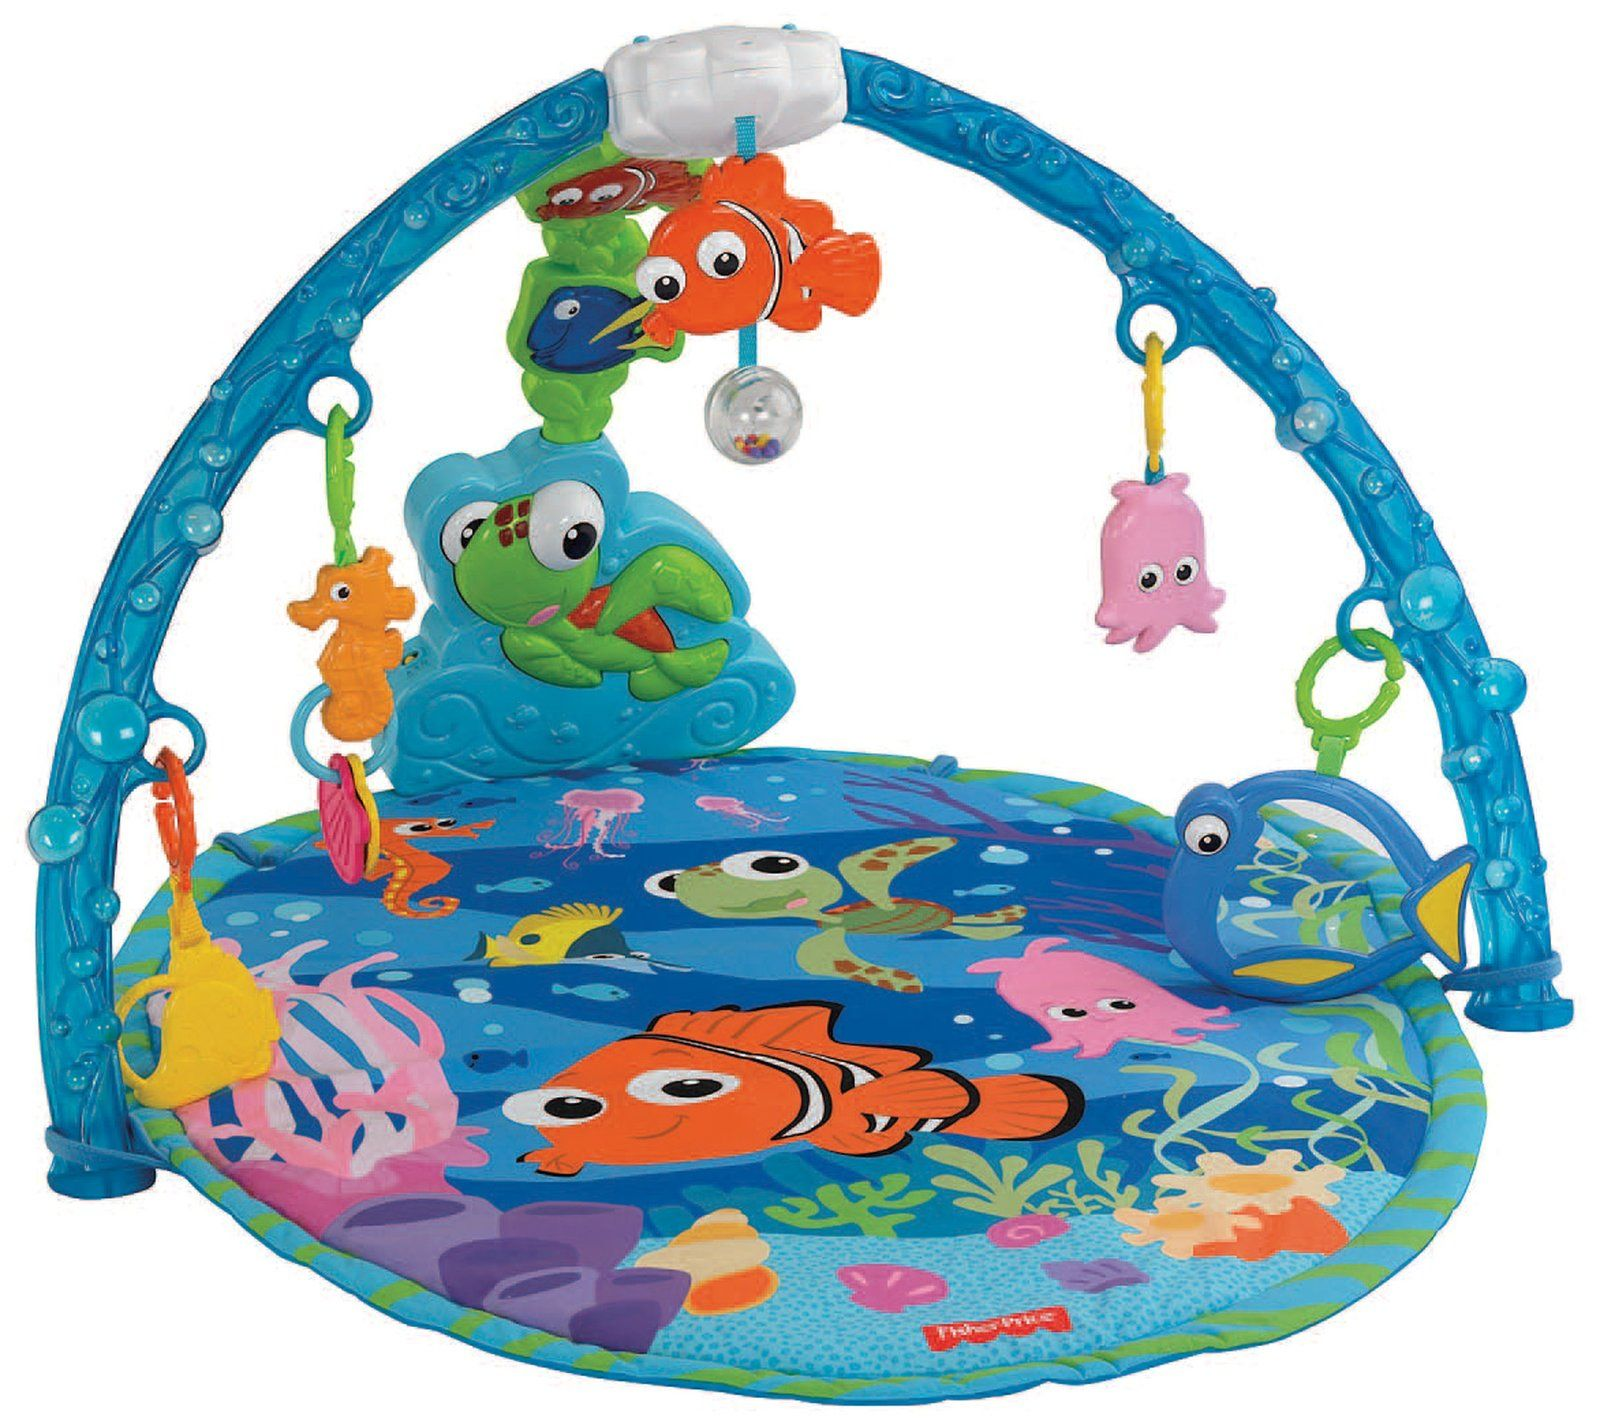 nemo baby clothes Home > Gear > Fisher Price Infant